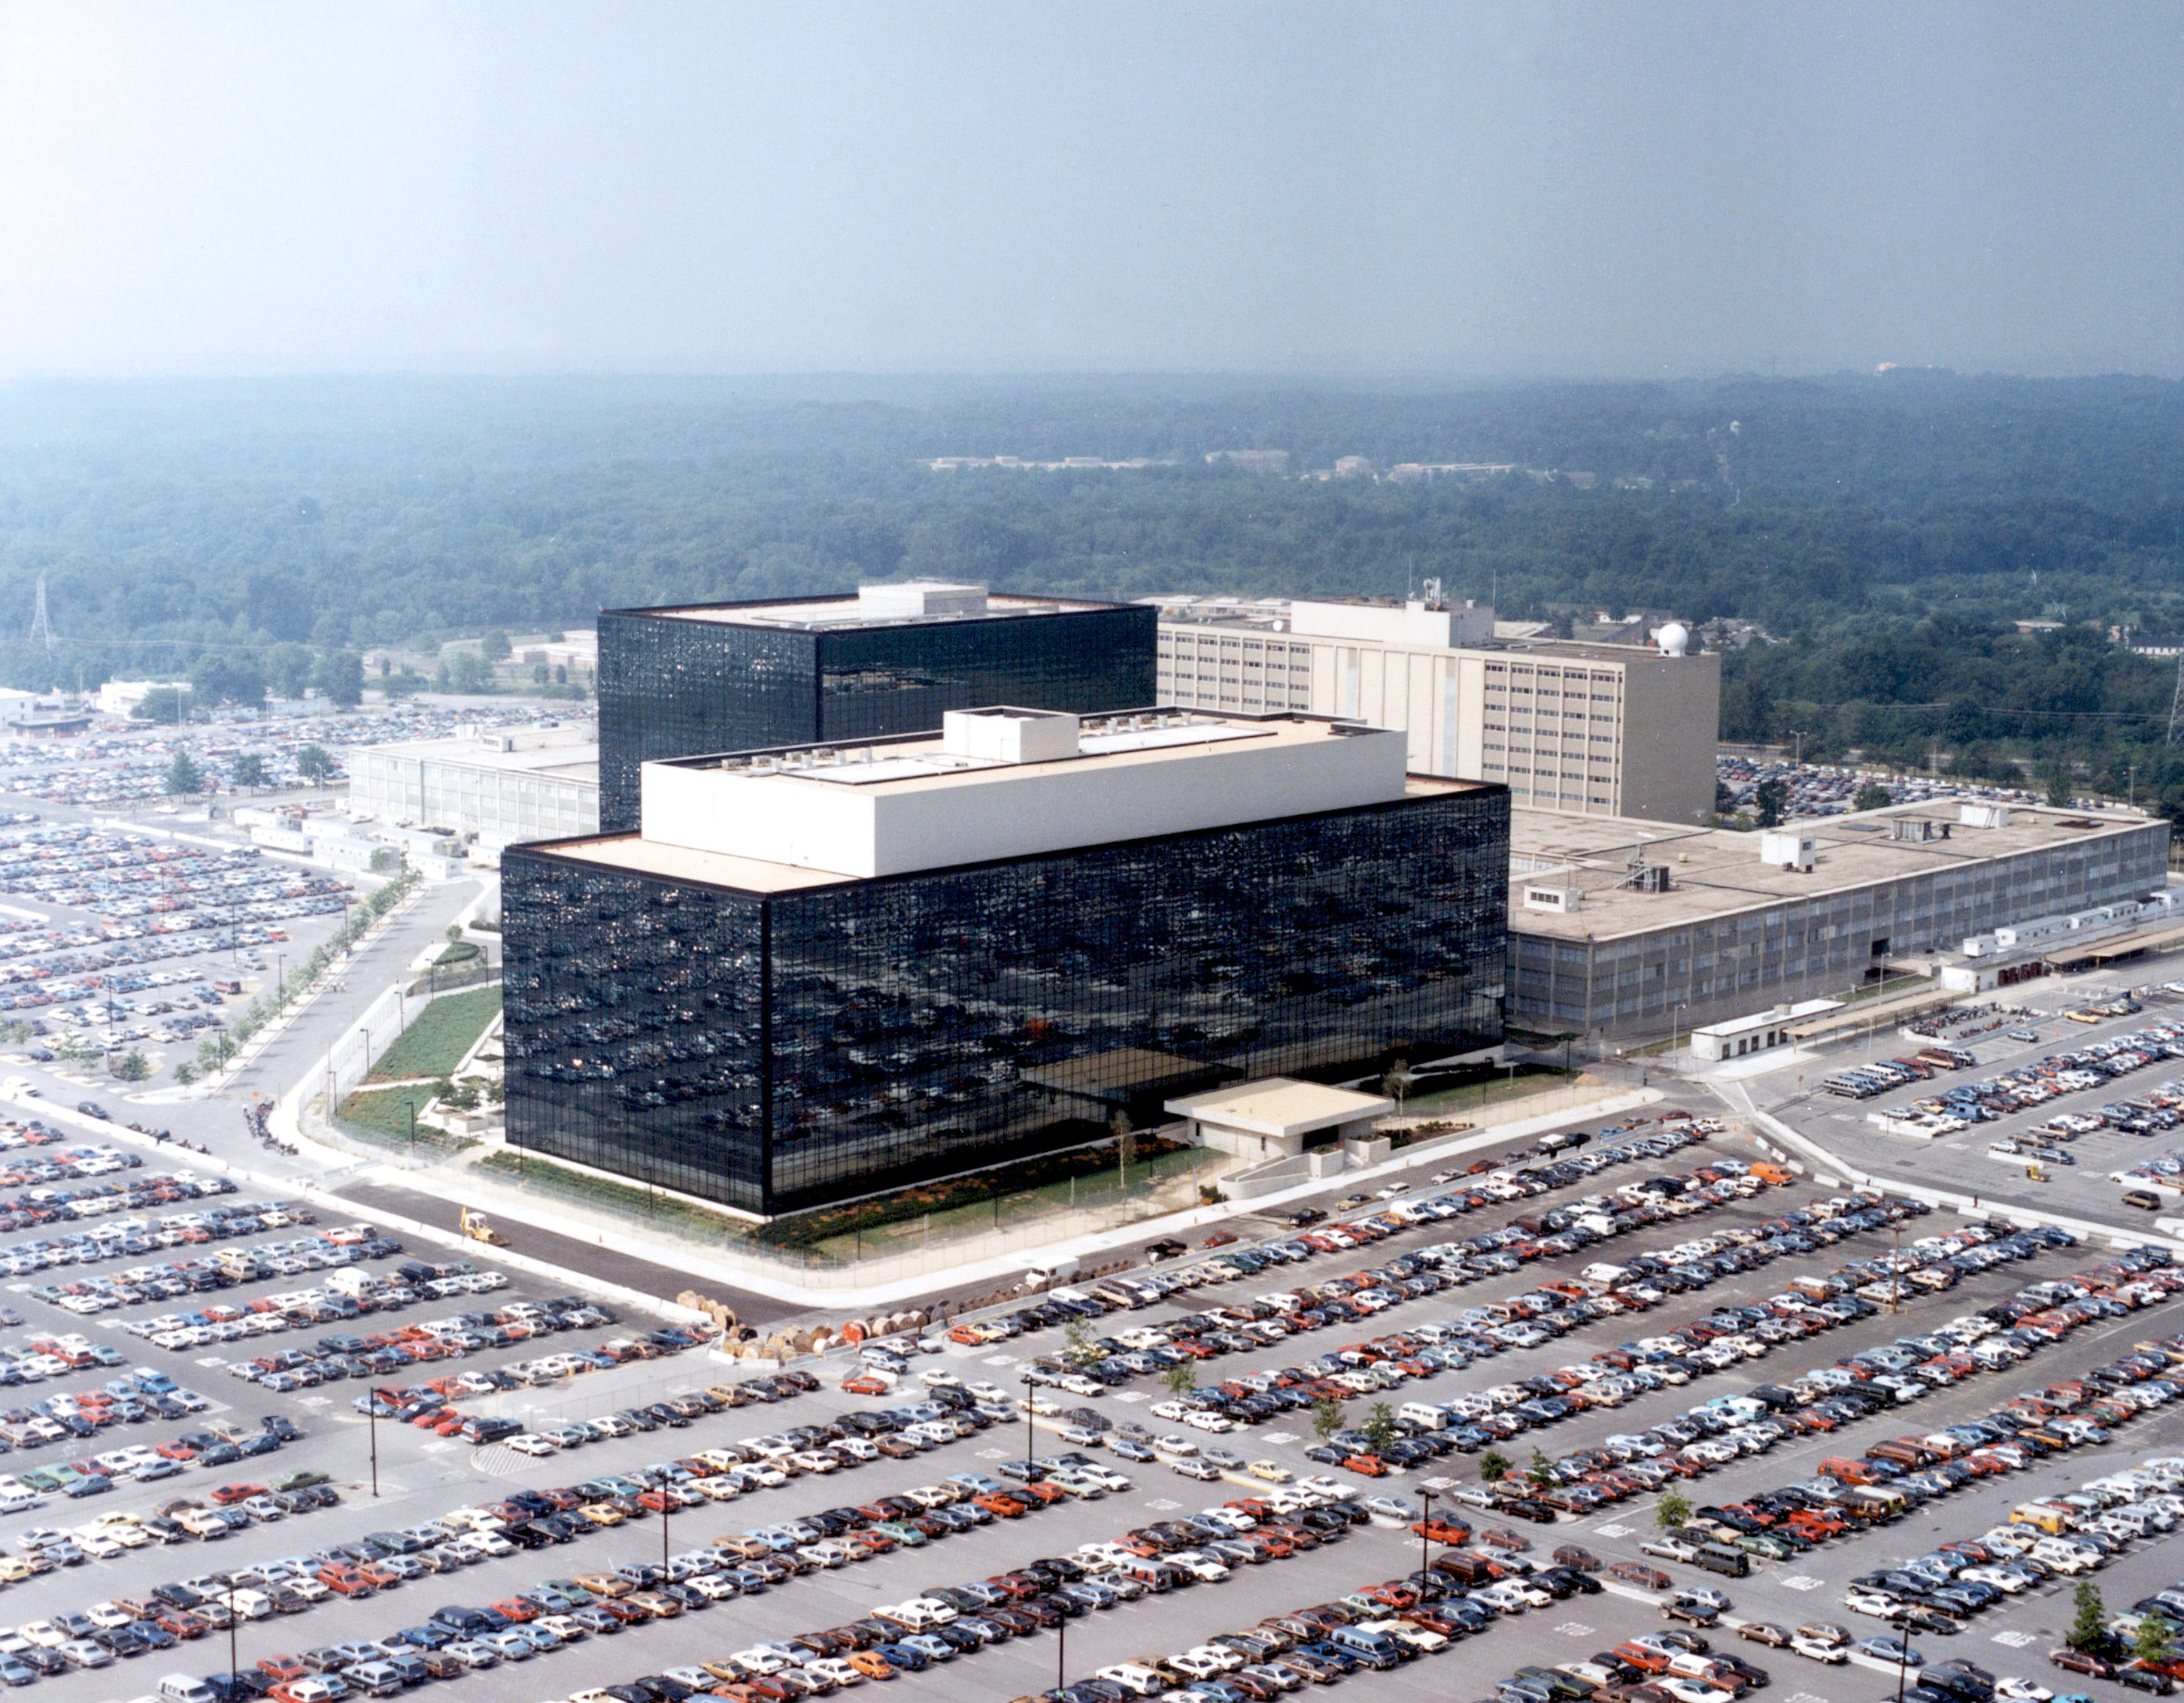 NSA - Fort Meade, Maryland headquarters